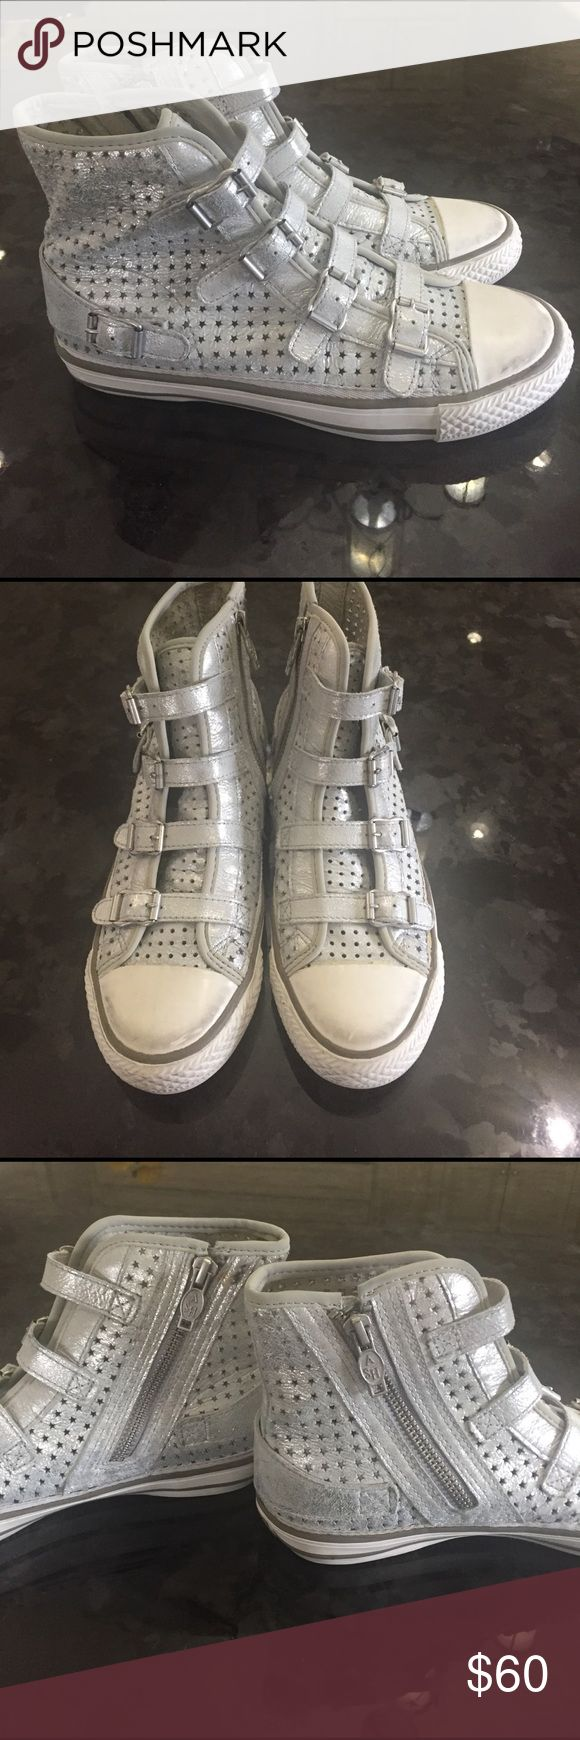 Soft silver leather sneaker Ash sneakers .. worn but not abused at all!!Vintage leather distressed sneaker. Zippers up the side for easy access.  The ash sneaker is distressed even brand new. That is the look of this sneaker. Runs big because I'm usually 6 1/2 but when I buy Ash, I'm a 6. ASH Shoes Sneakers